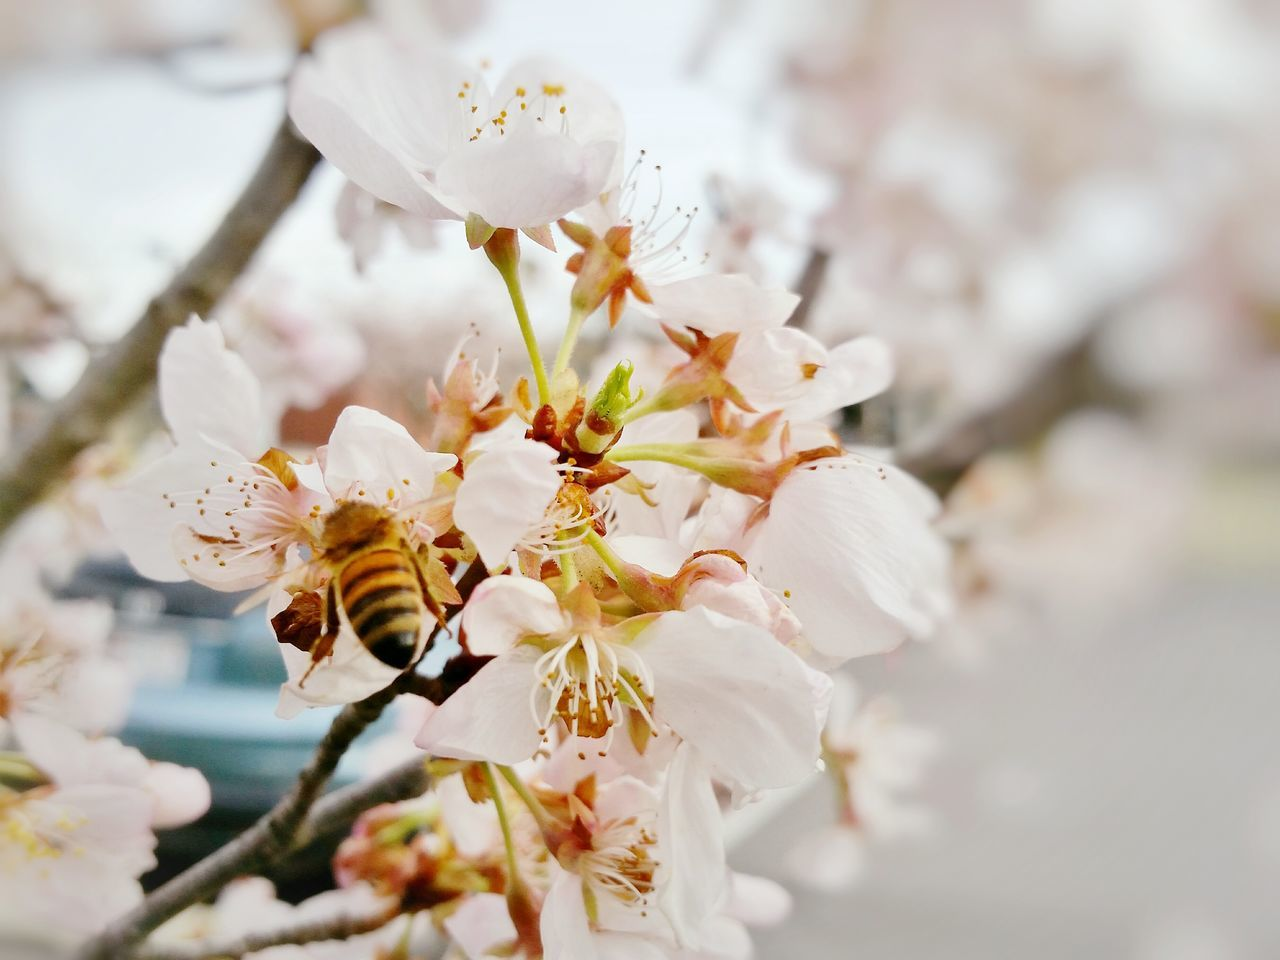 branch blossom Nature twig Growth springtime flower close-up beauty in Nature Tree Plant flower head fragility no people beauty outdoors day blossoms bee honey bee soft focus Soft light Sakura The EyeEm Collection